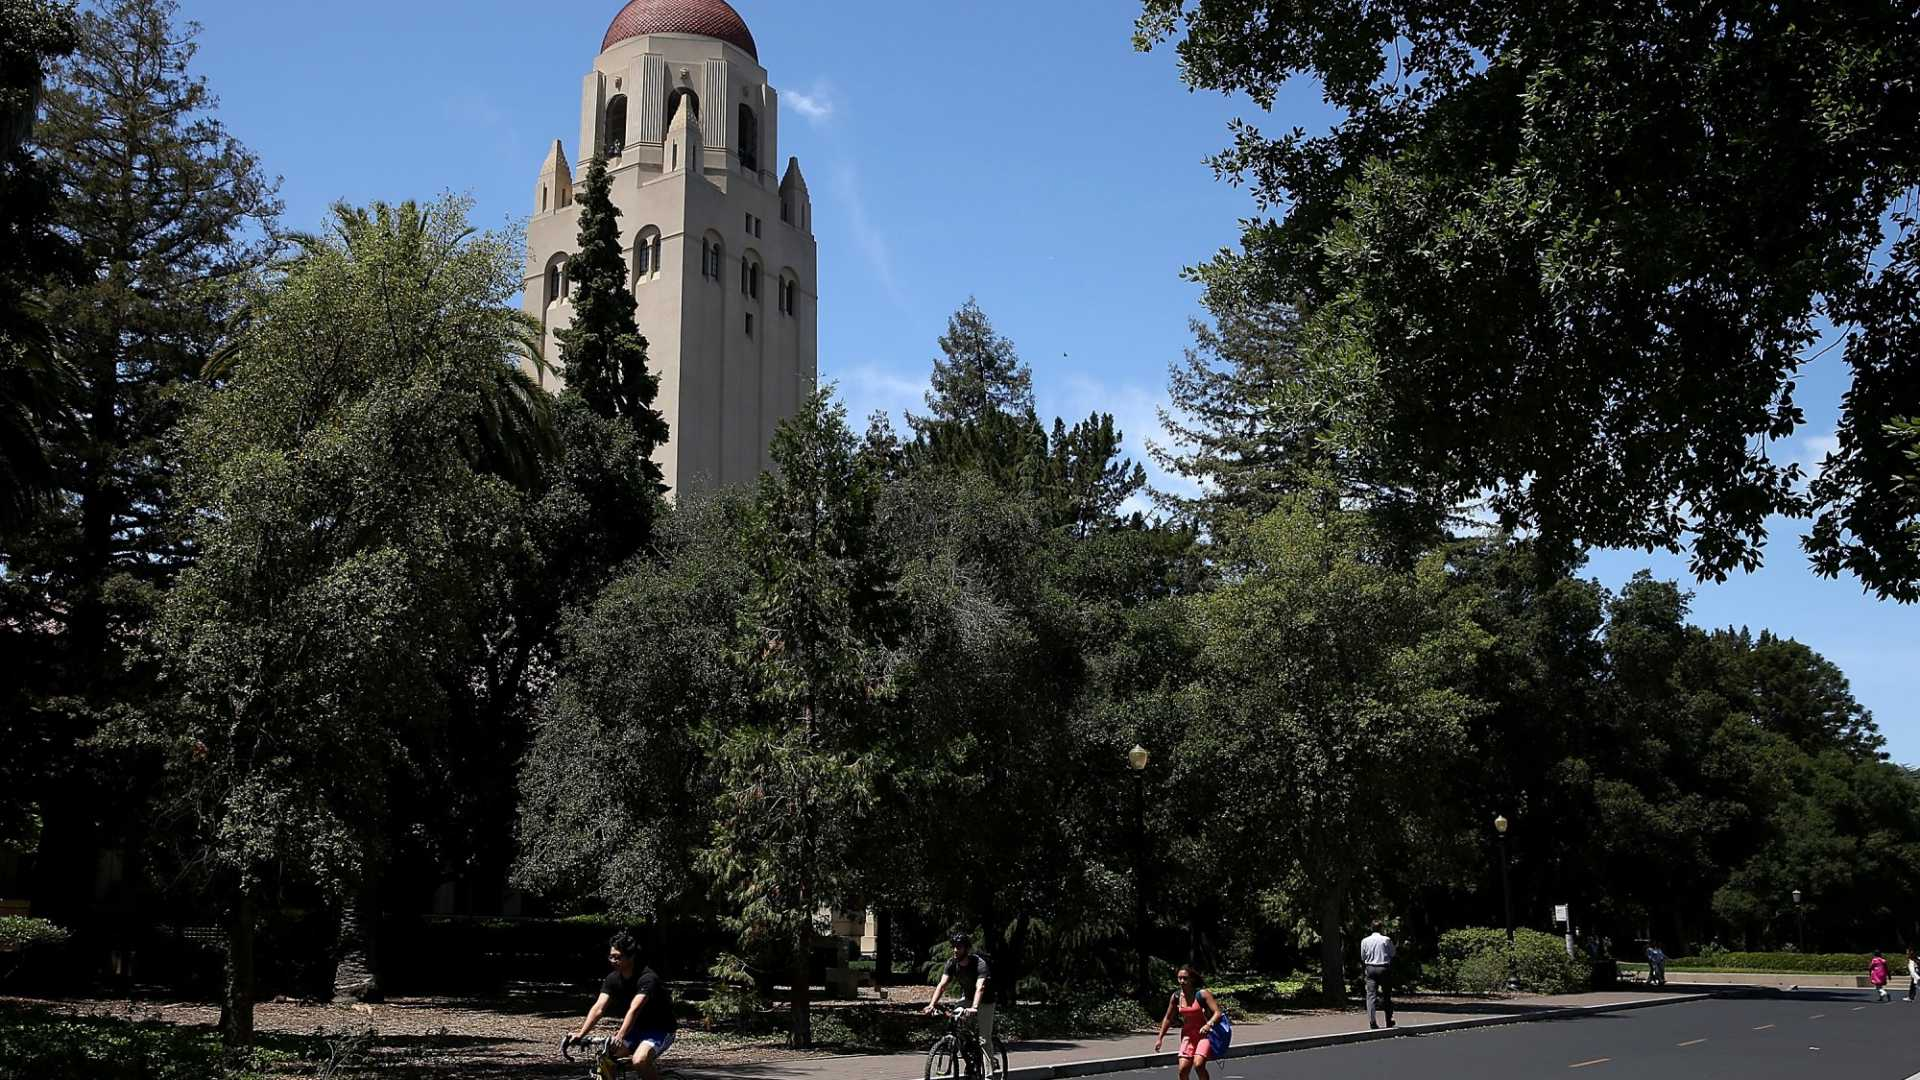 95 Percent of Stanford MBAs Have Taken This Leadership Course. Now You Can Too